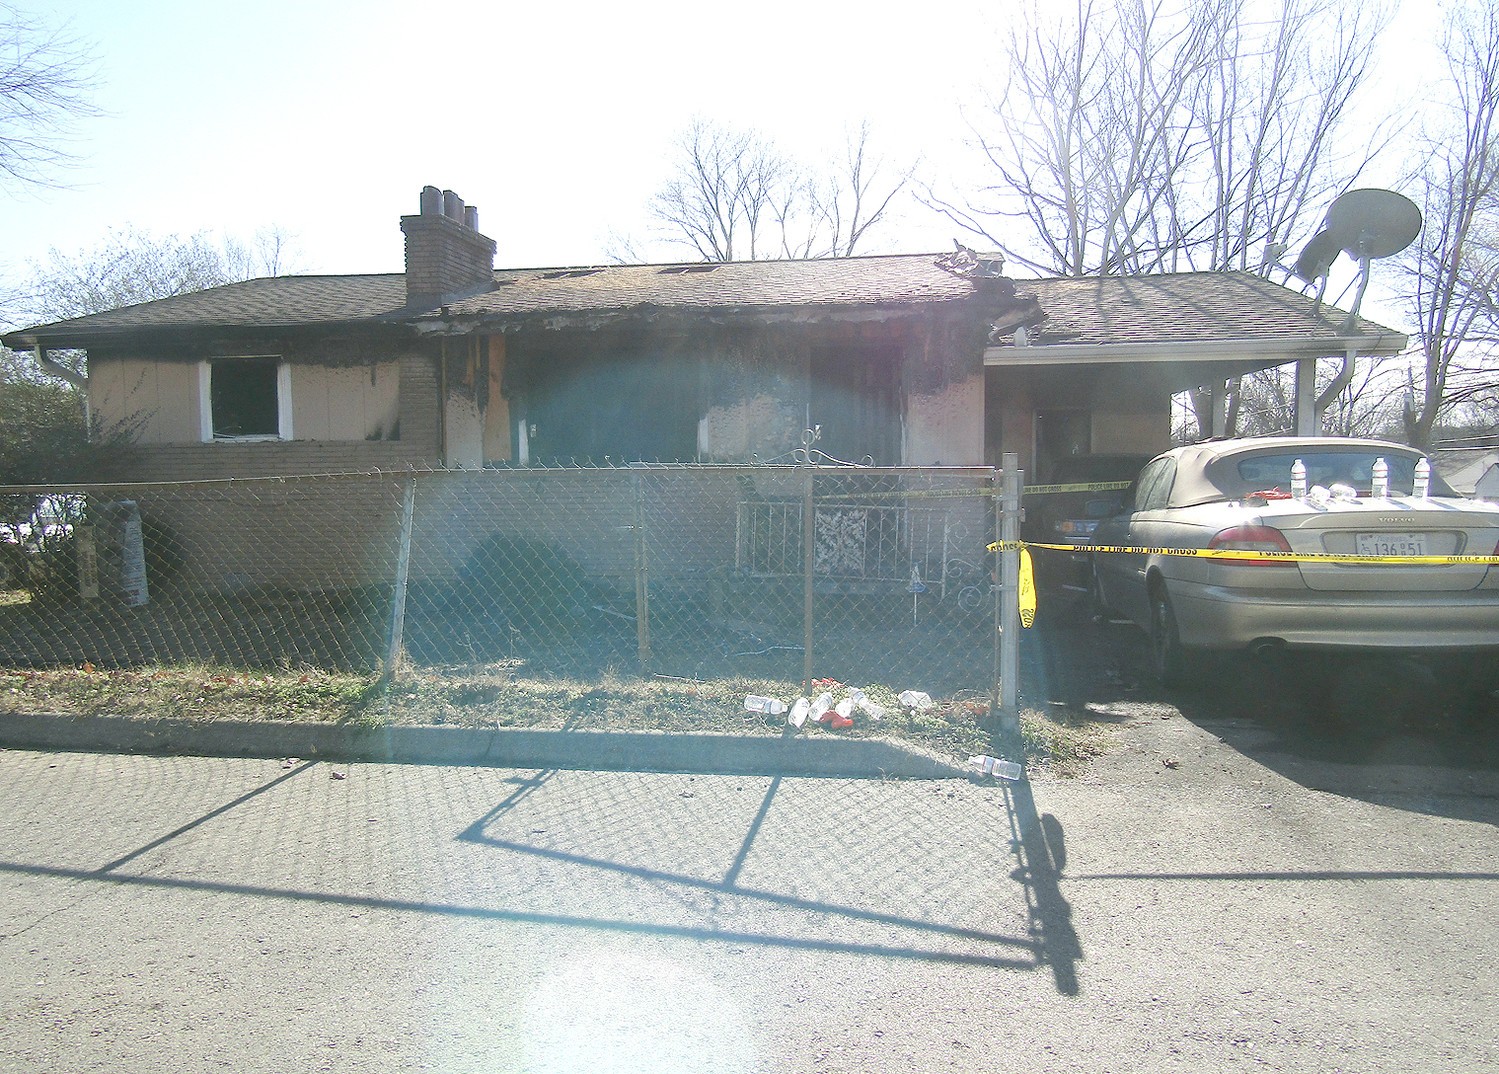 One of the residents of this house af 685 4th Street S.E. did not survive a fire which occurred Friday evening.